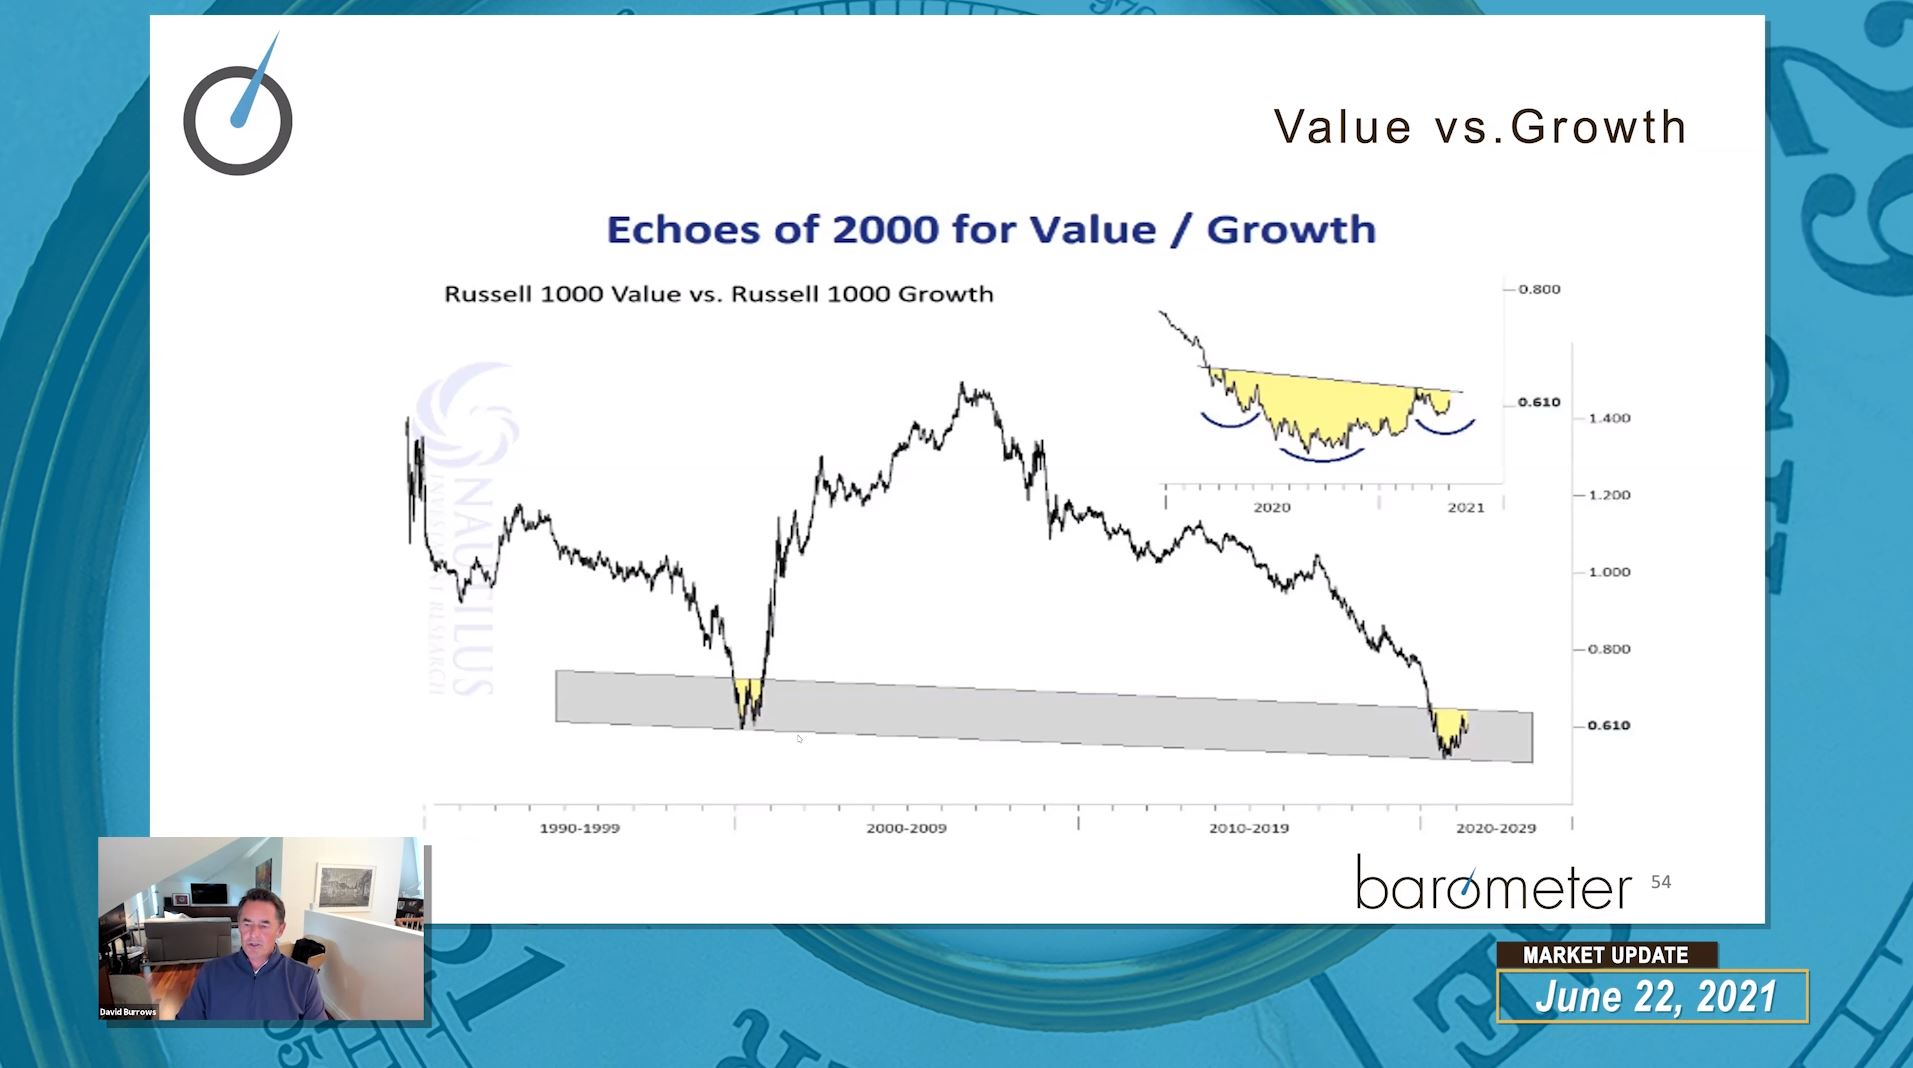 Weekly Barometer Readings (Video) – David Burrows & Diana Avigdor Discuss The Federal Reserve & Interest Rates, Capital Flows, Expanding Breadth, and Leadership Themes